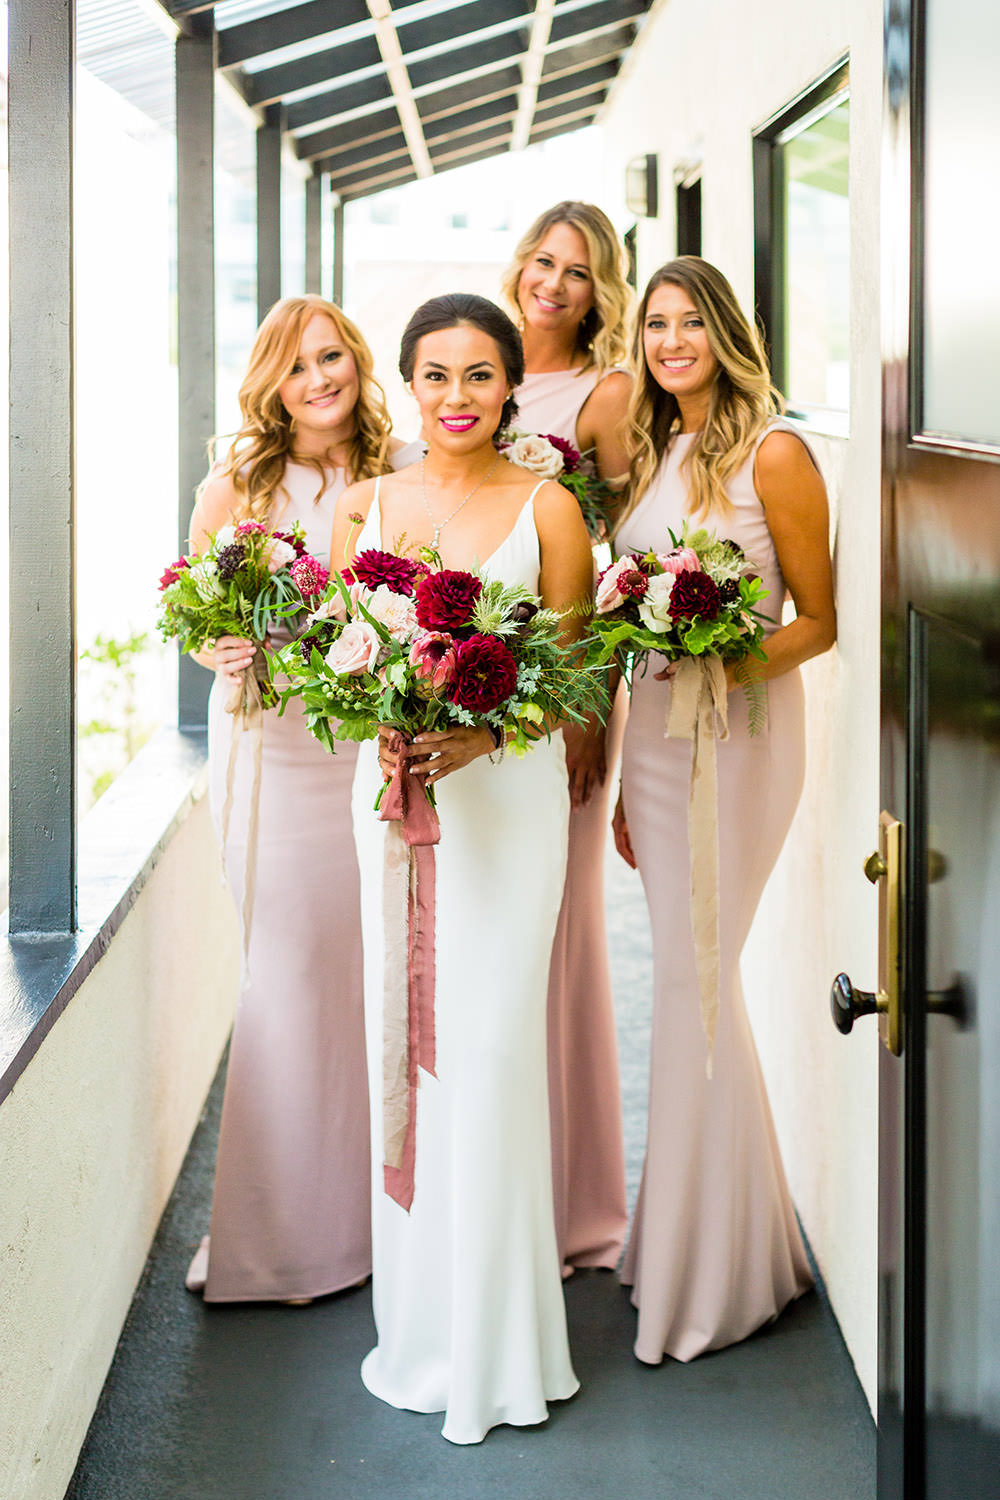 Hotel Covell boutique wedding in Southern California Los Feliz Los Angeles